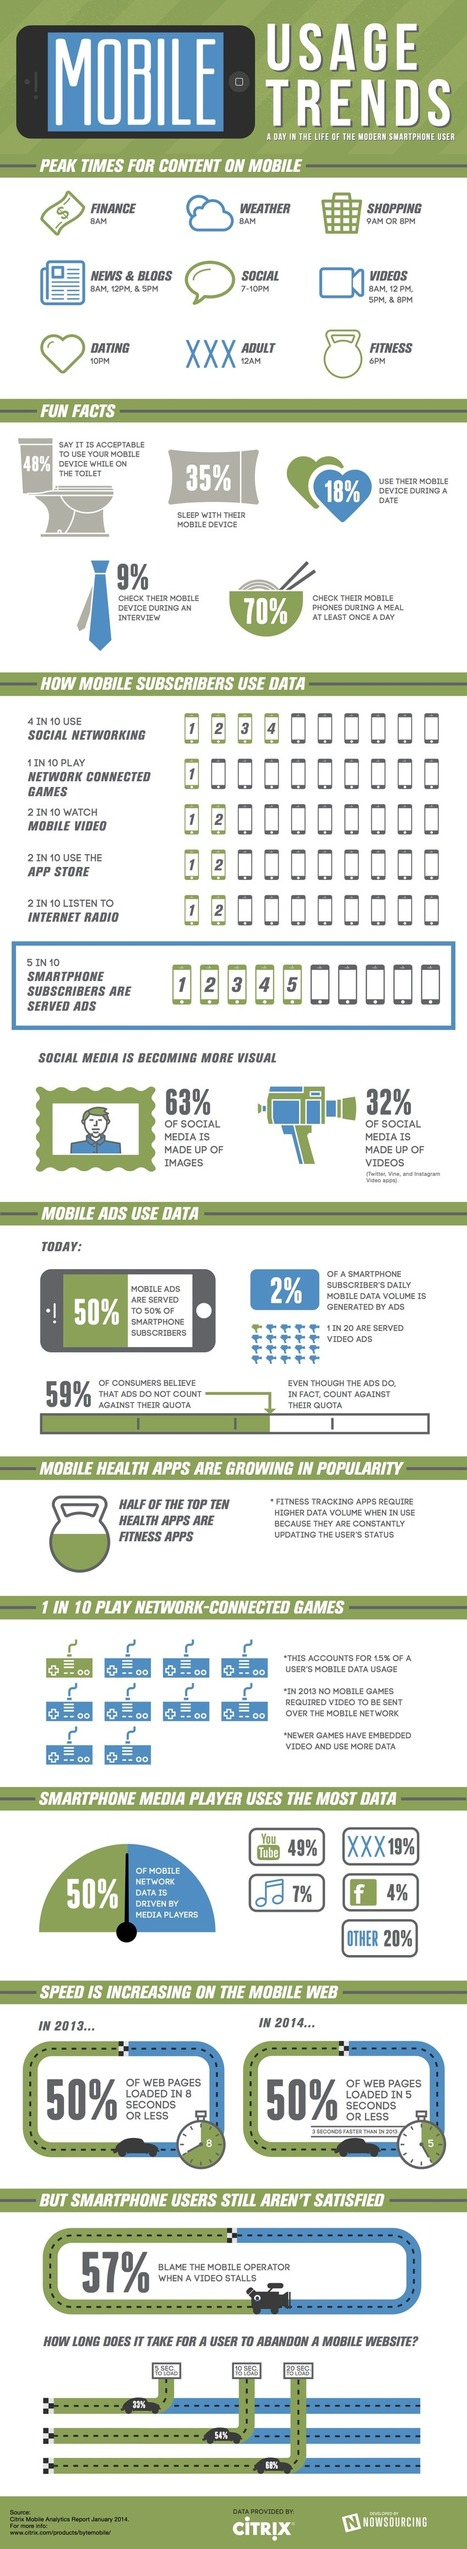 A Day in the Life of the Modern Smartphone User [Infographic] | Digital Marketing News & Trends... | Scoop.it